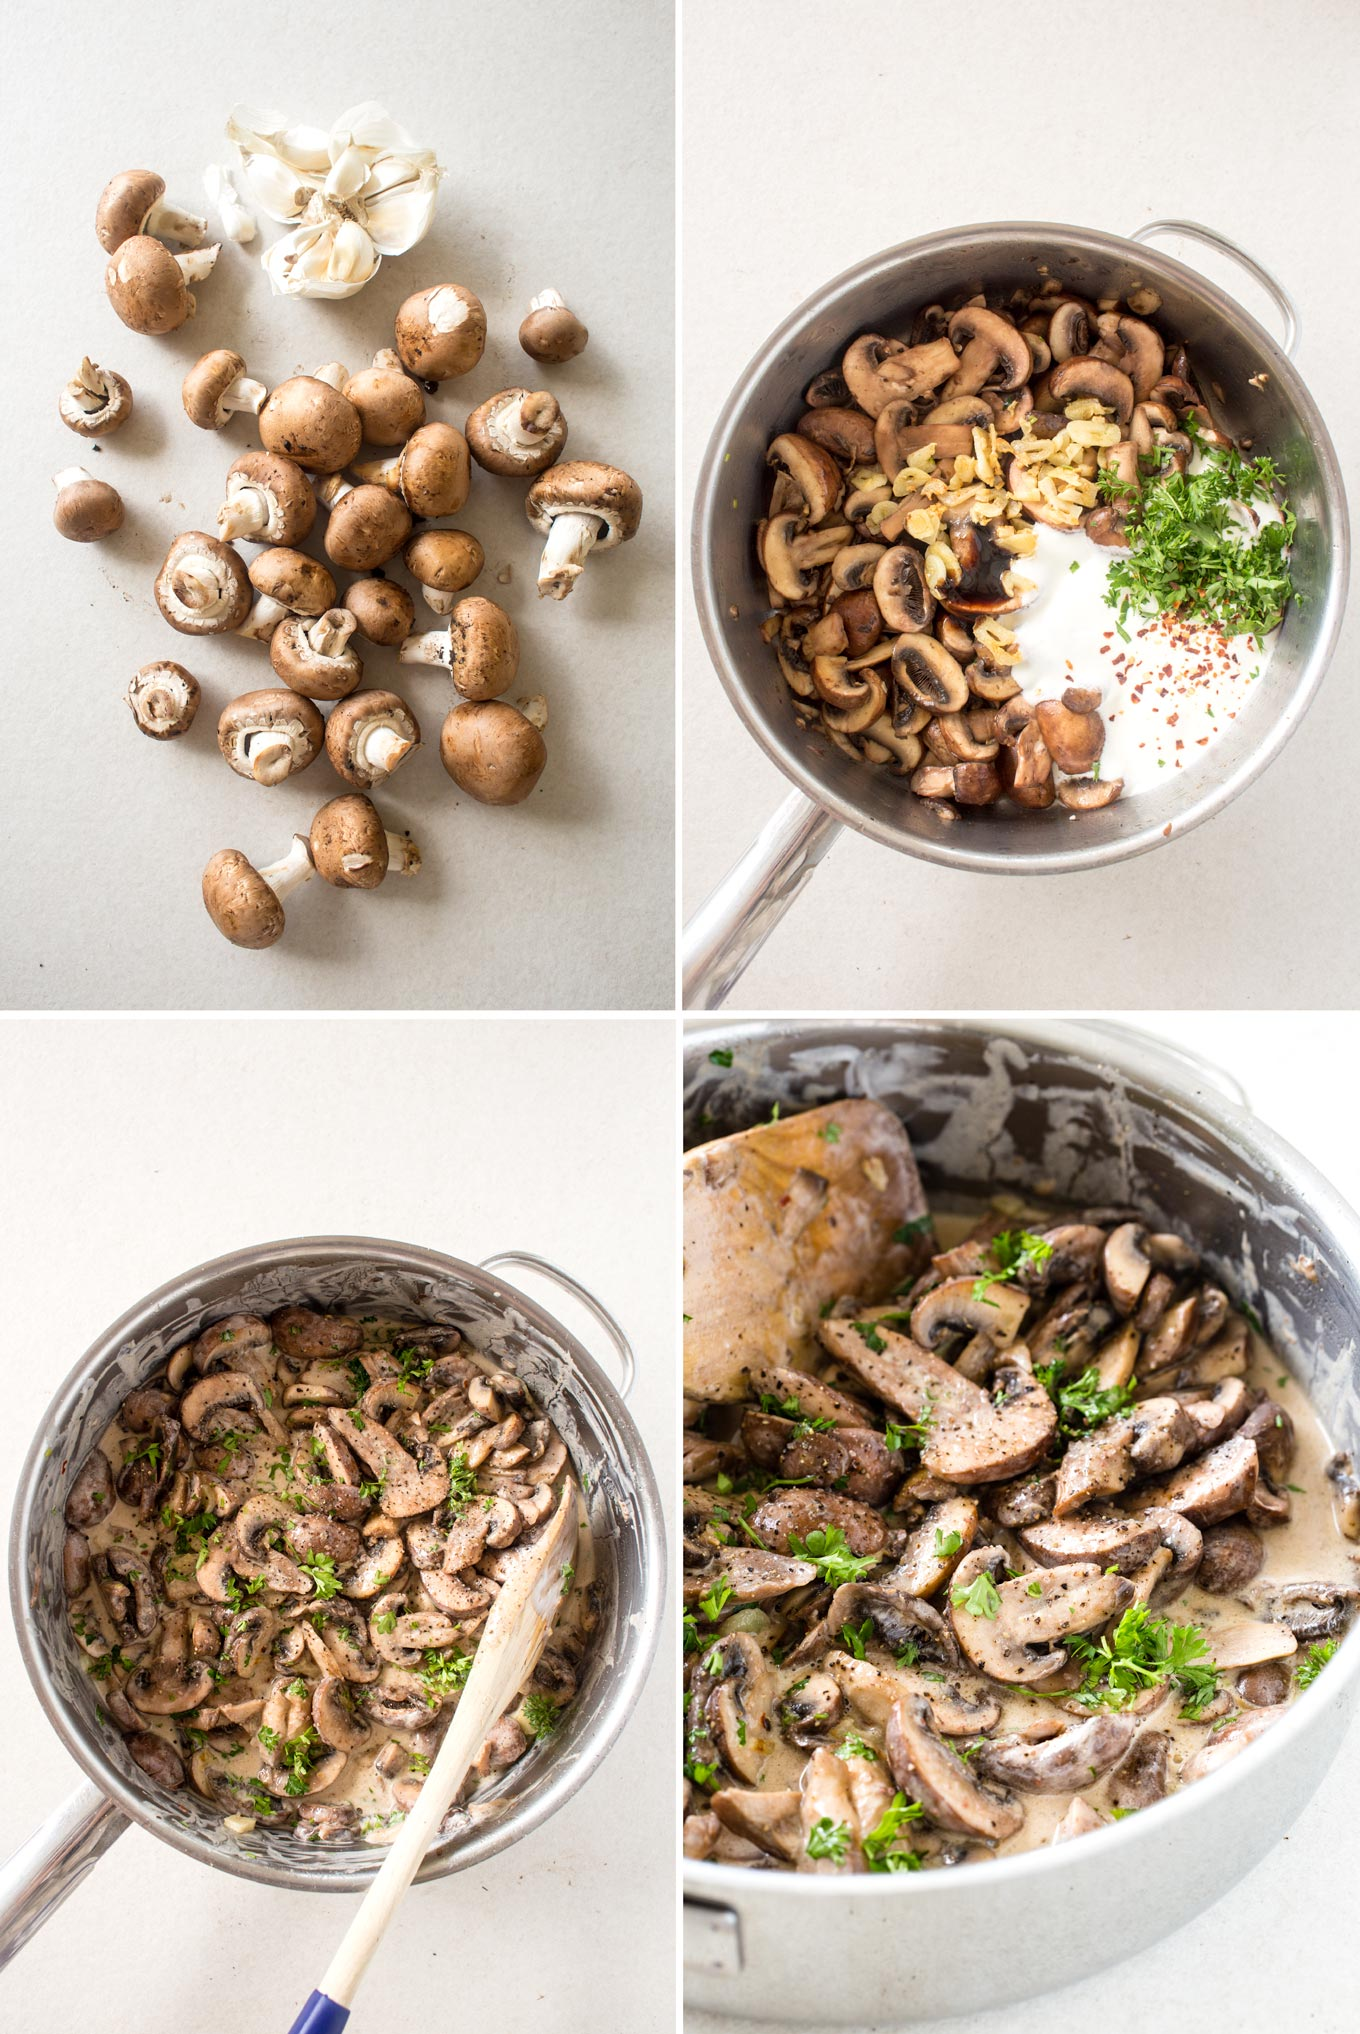 Creamy Garlic Mushrooms Recipe Step by Step Instruction Collage